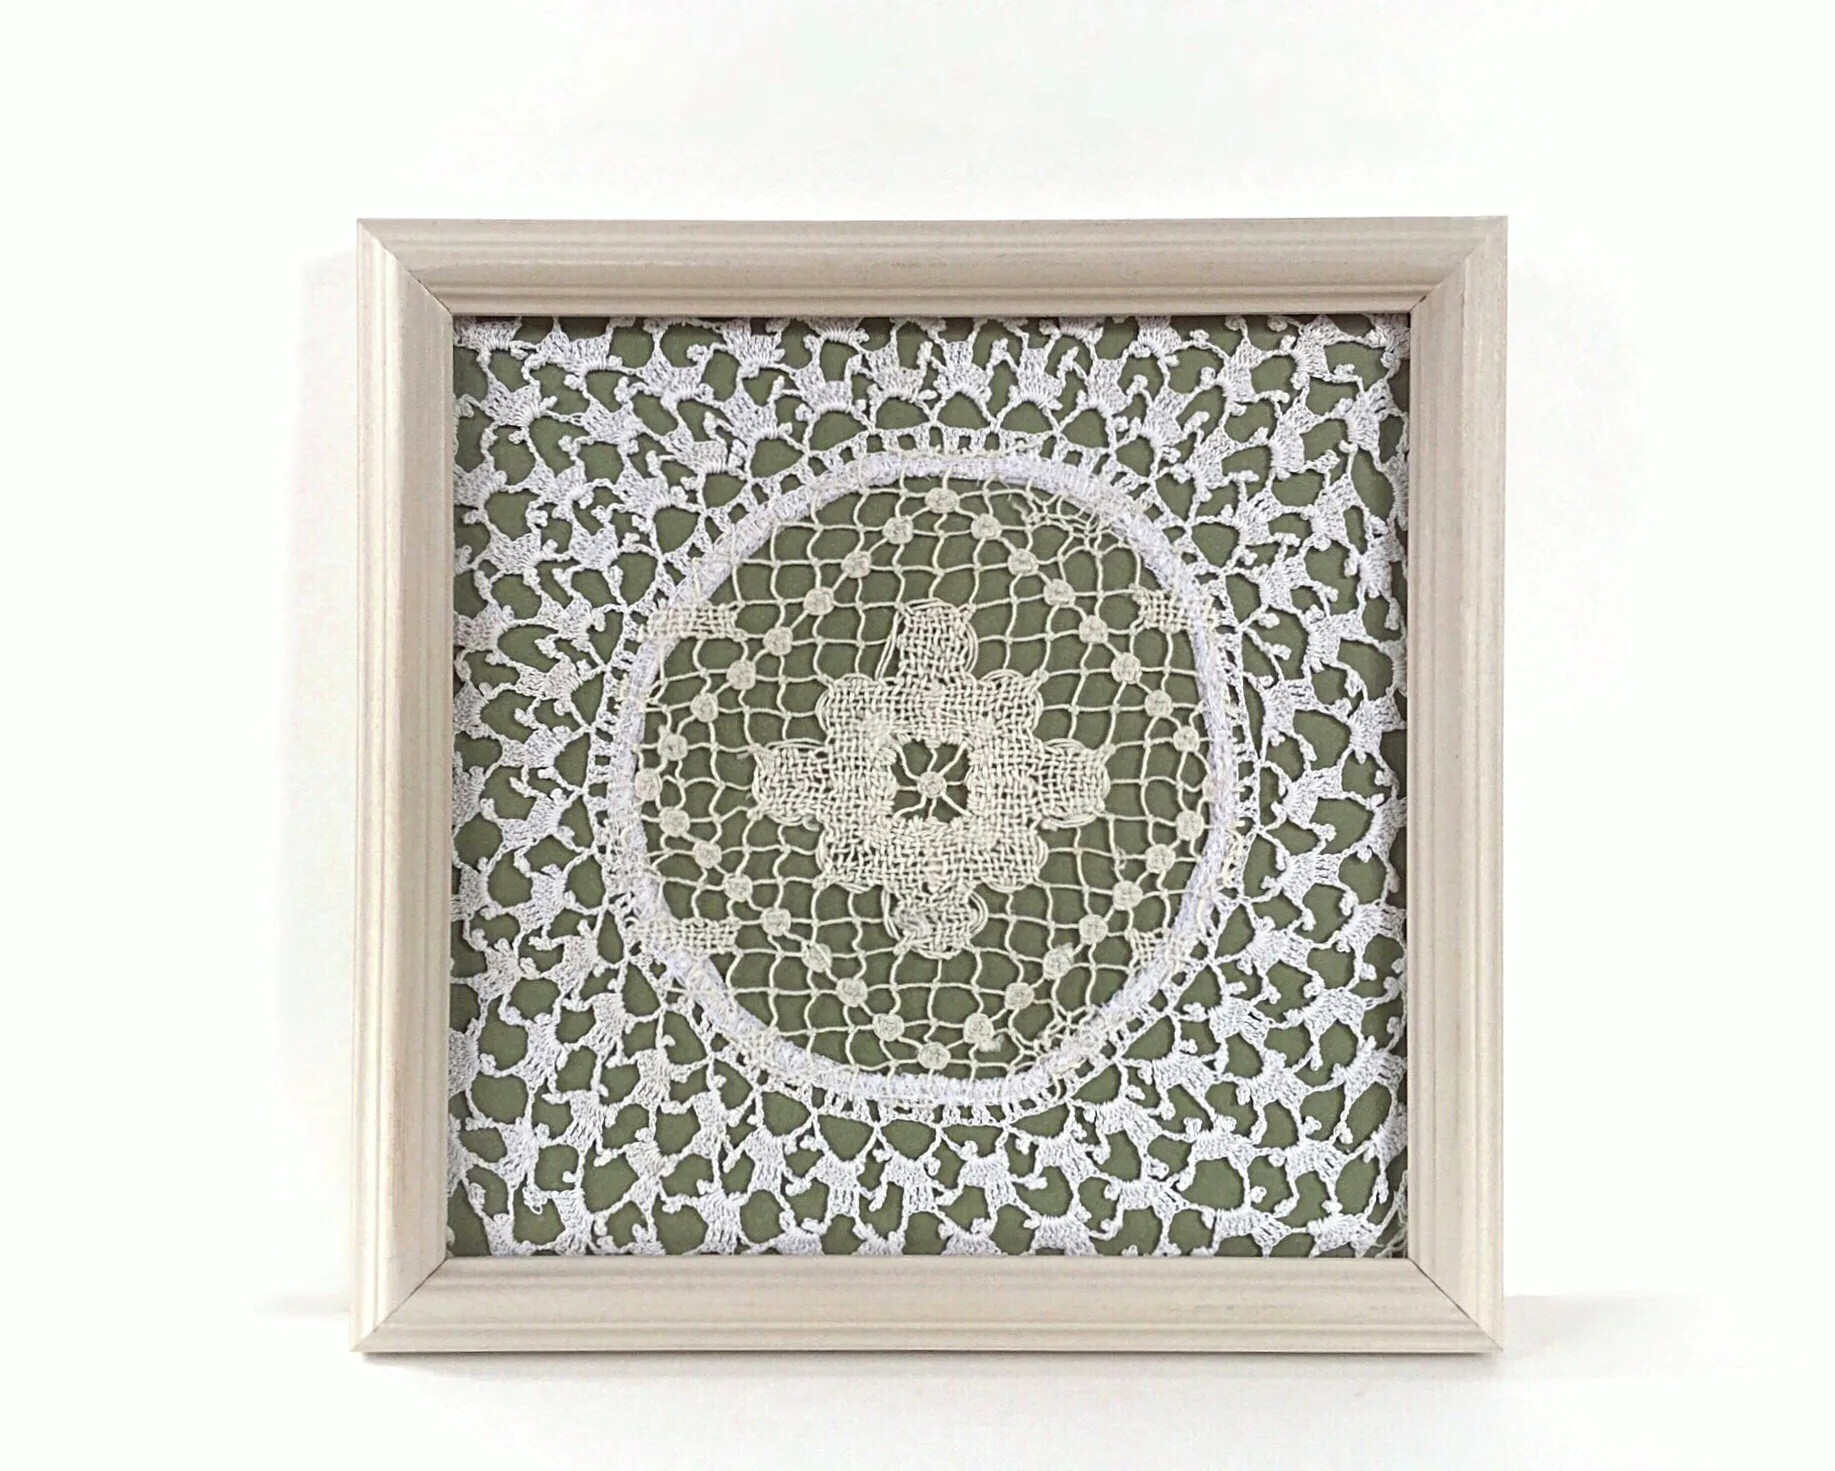 Olive Green Wall Decor Olive Green Wall Art Doily In A Frame Green Wall Decor White And Green Art Medallion Design Spring Green Decor Green Gallery Wall